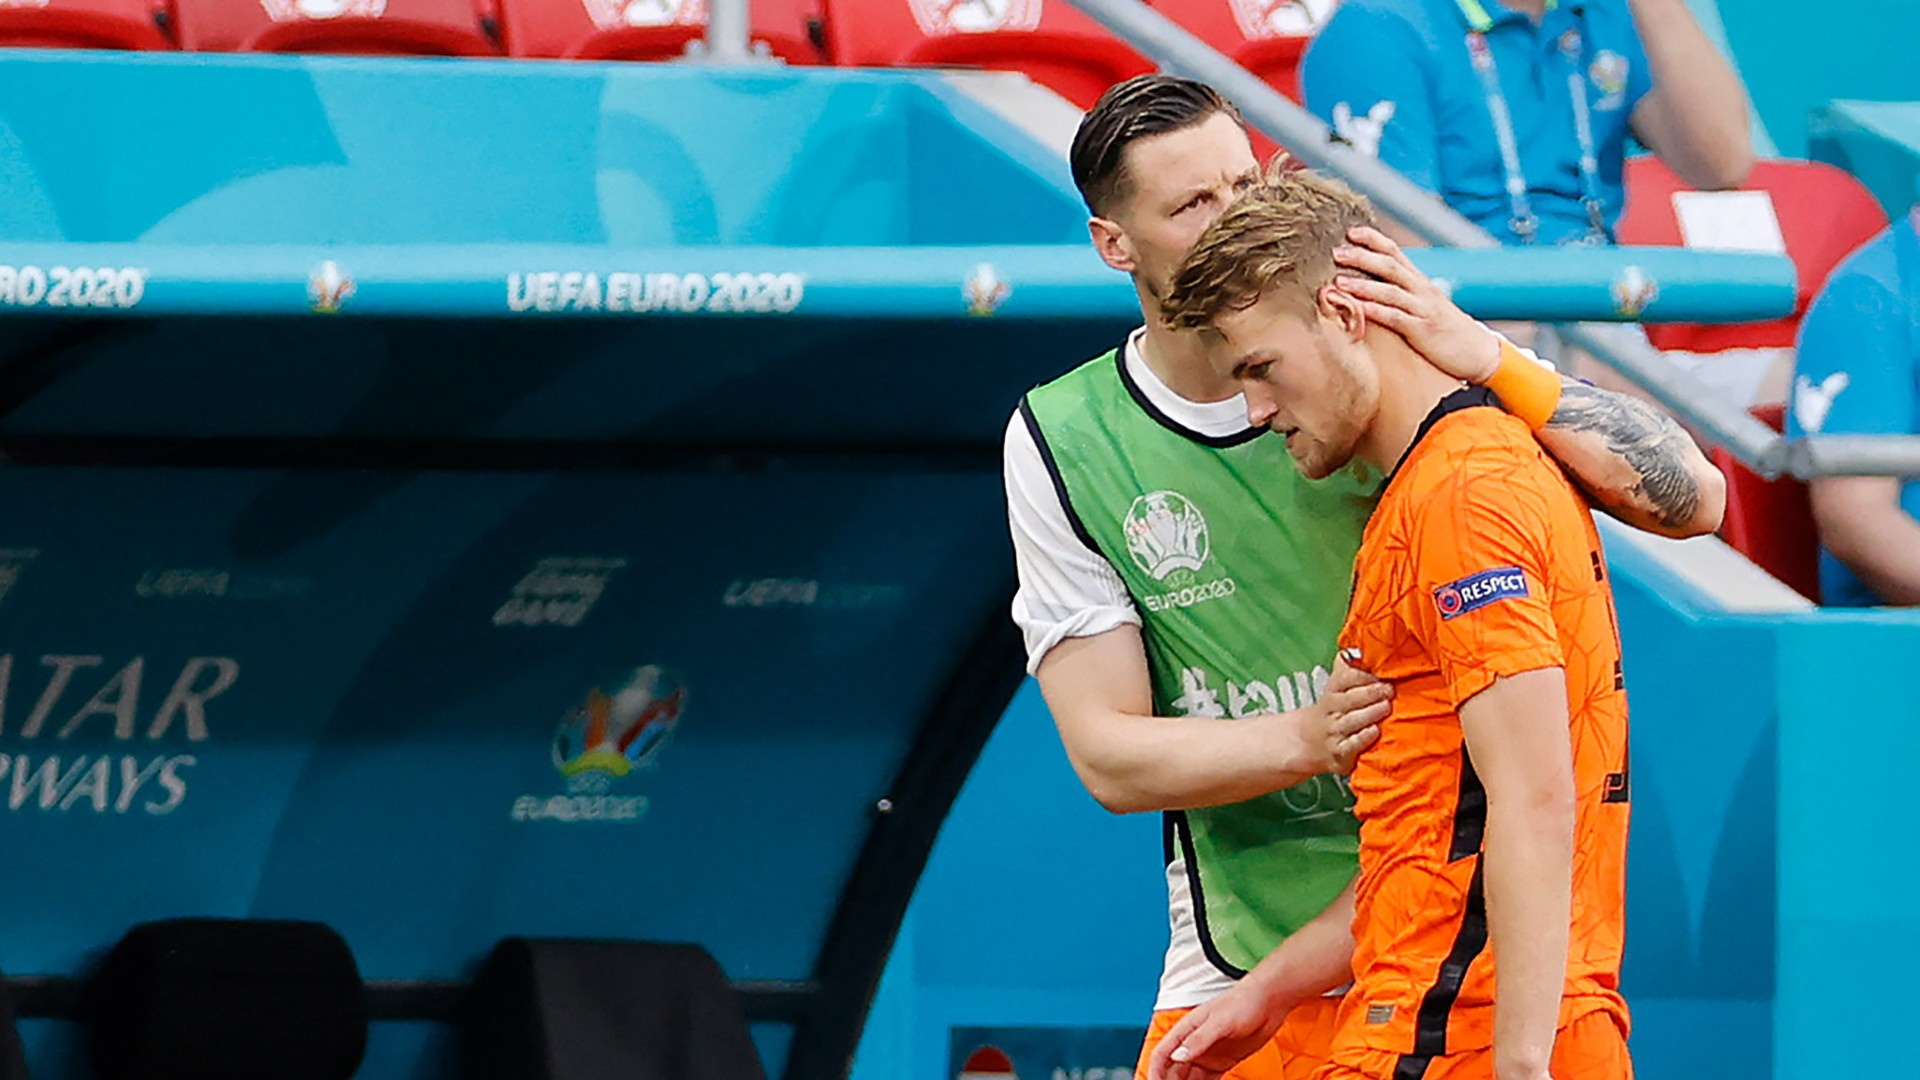 'We lost because of my mistake' – De Ligt laments 'painful' lapse as Netherlands lose to Czech Republic